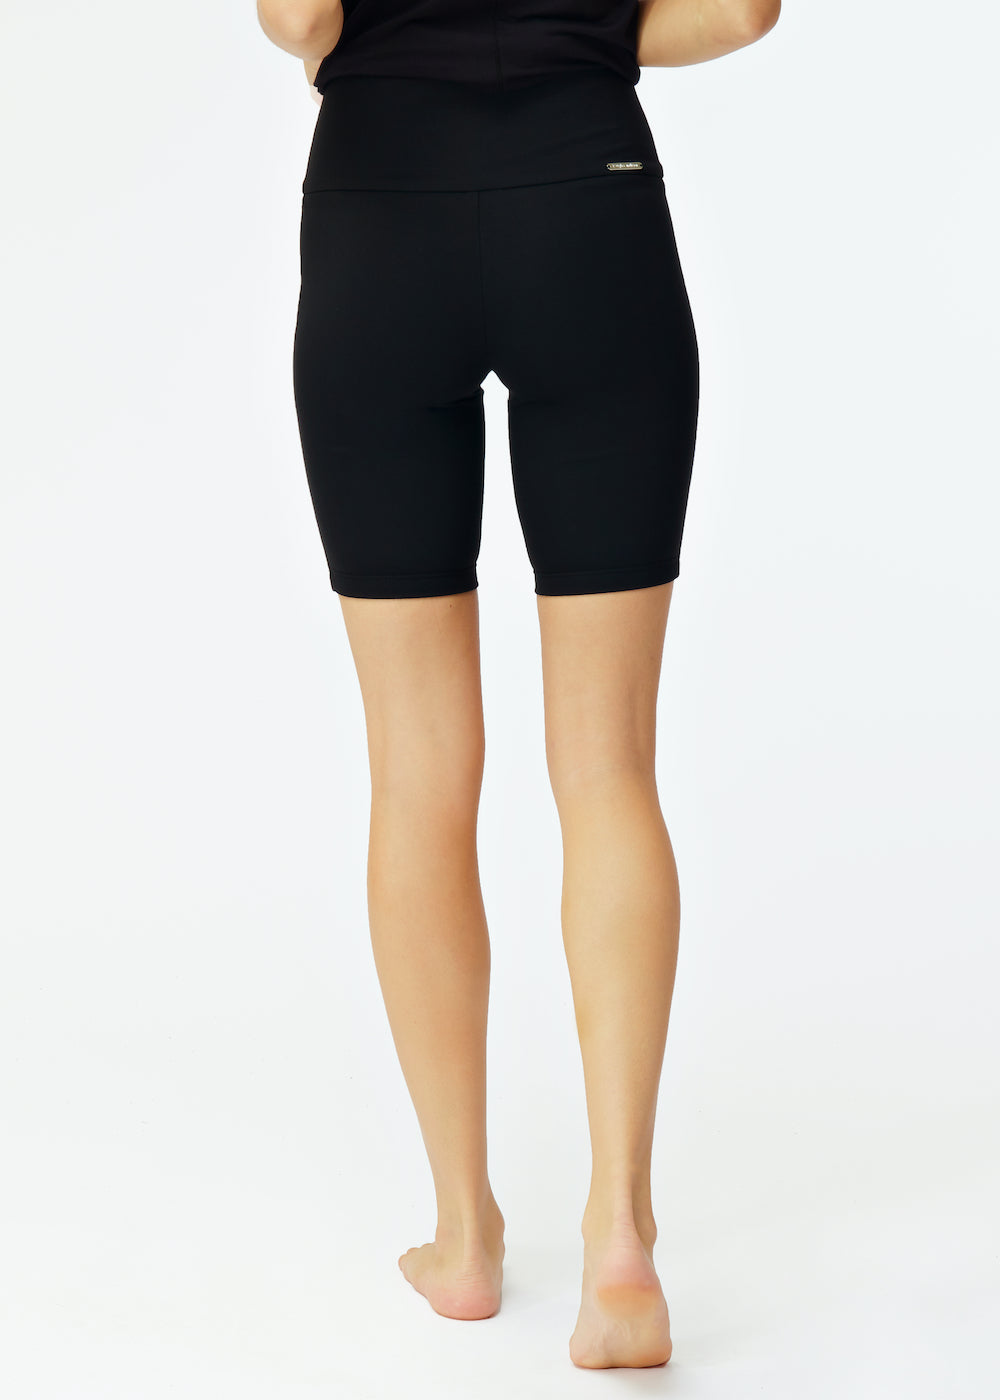 Esther Pull-on shaper bike short - Lounge to Street-wear.